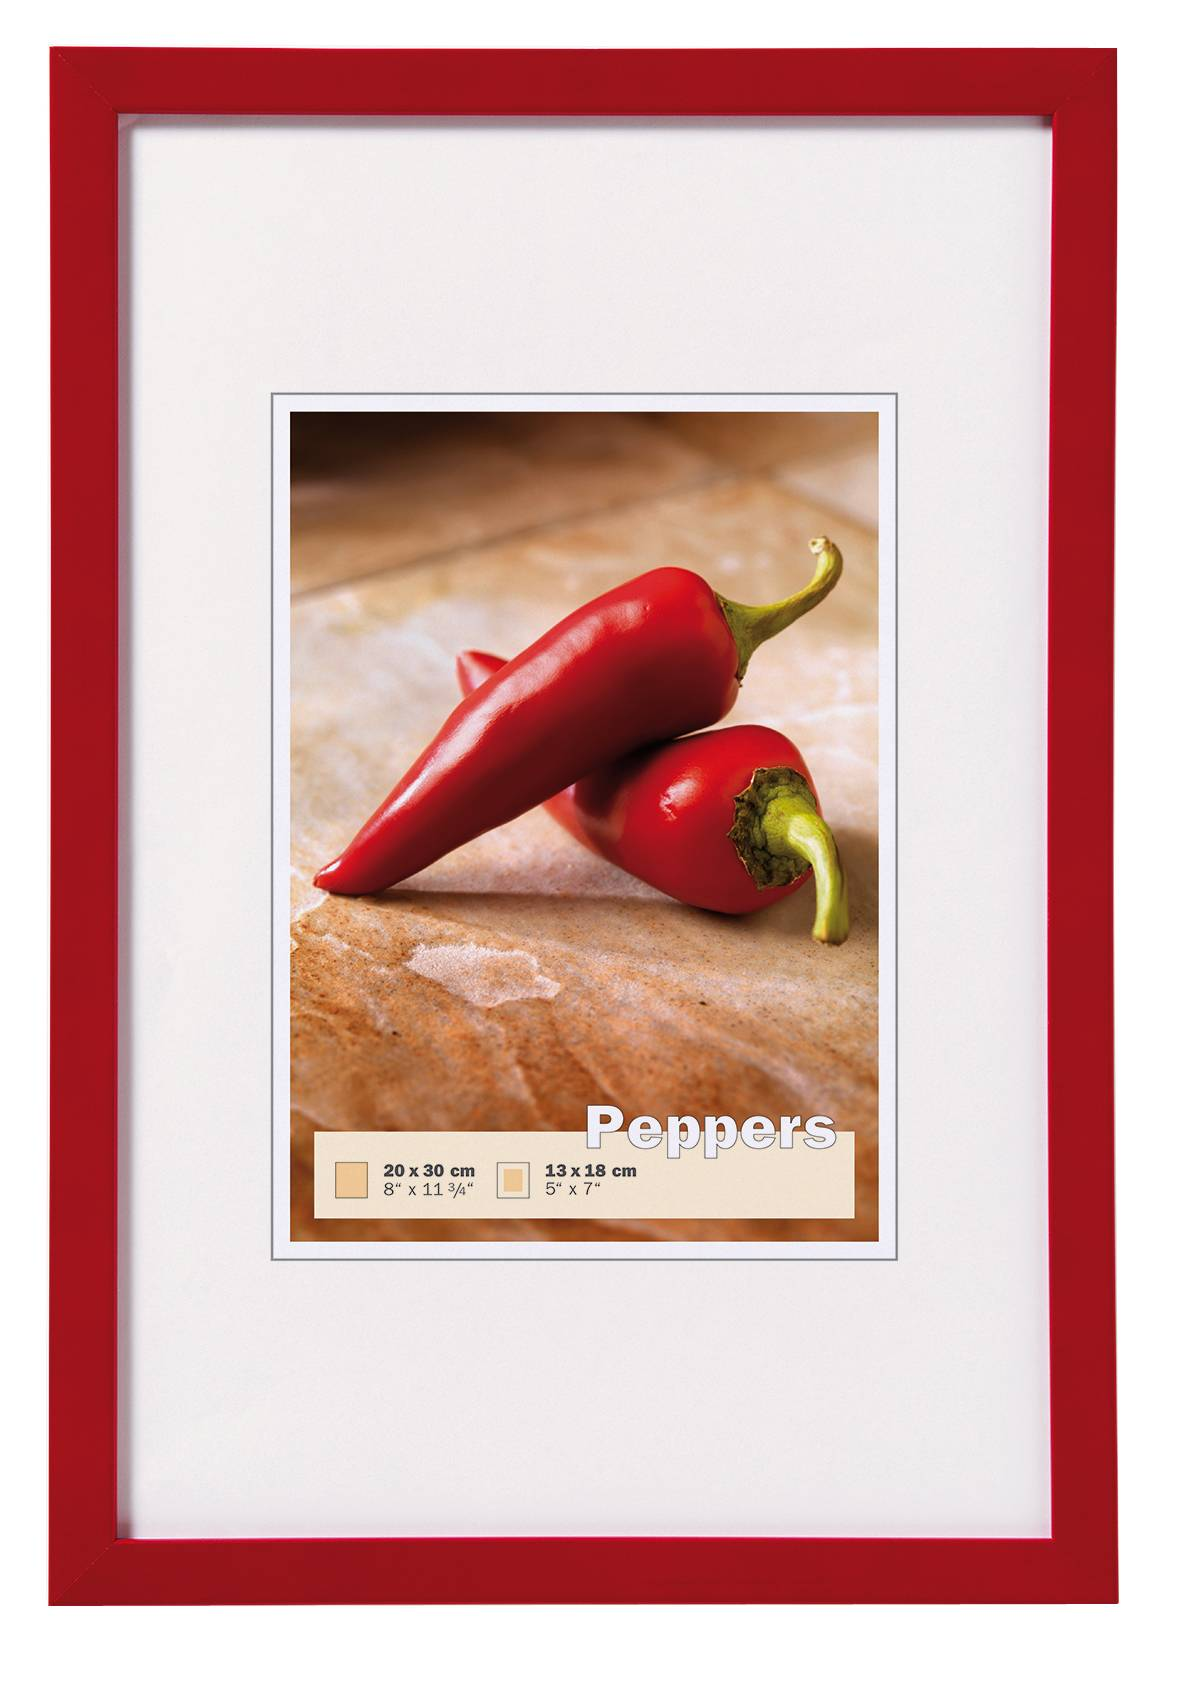 Walther Peppers Punainen 20x30 cm